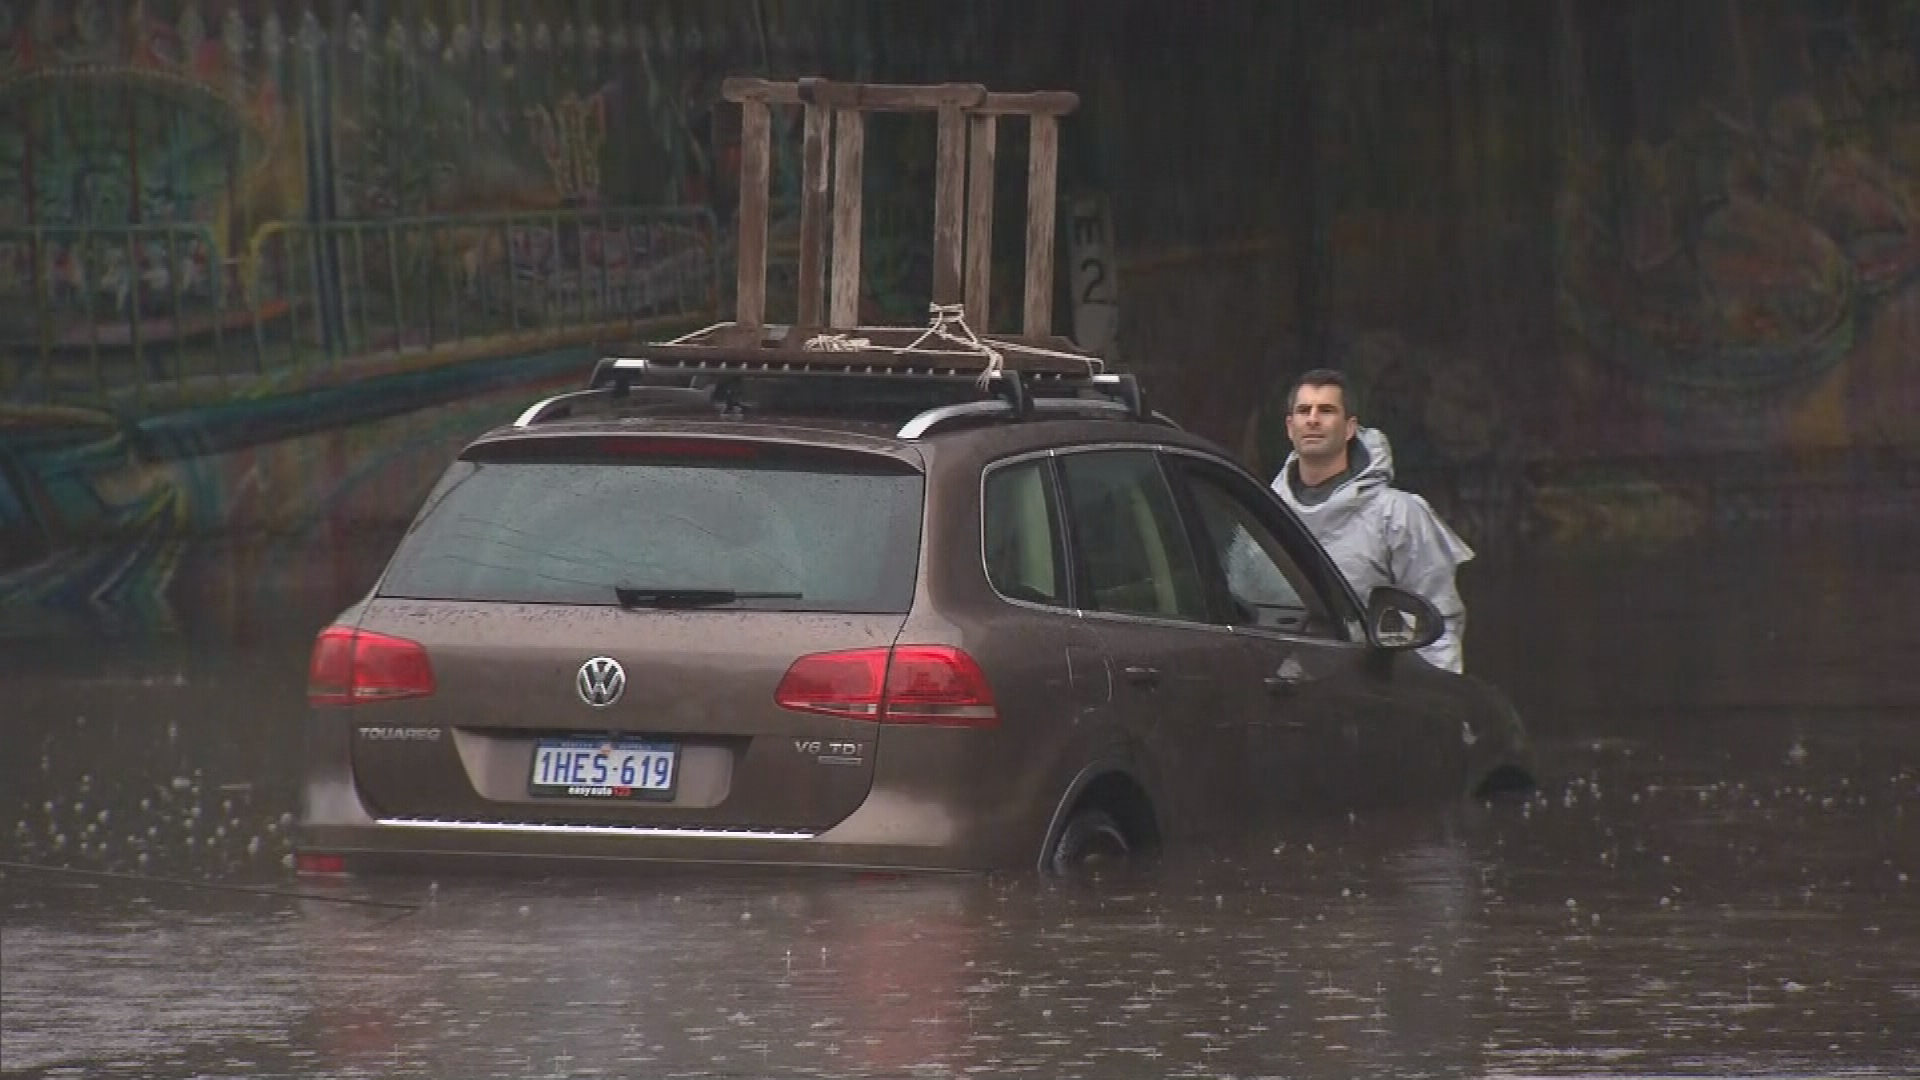 Perth hit by severe storms